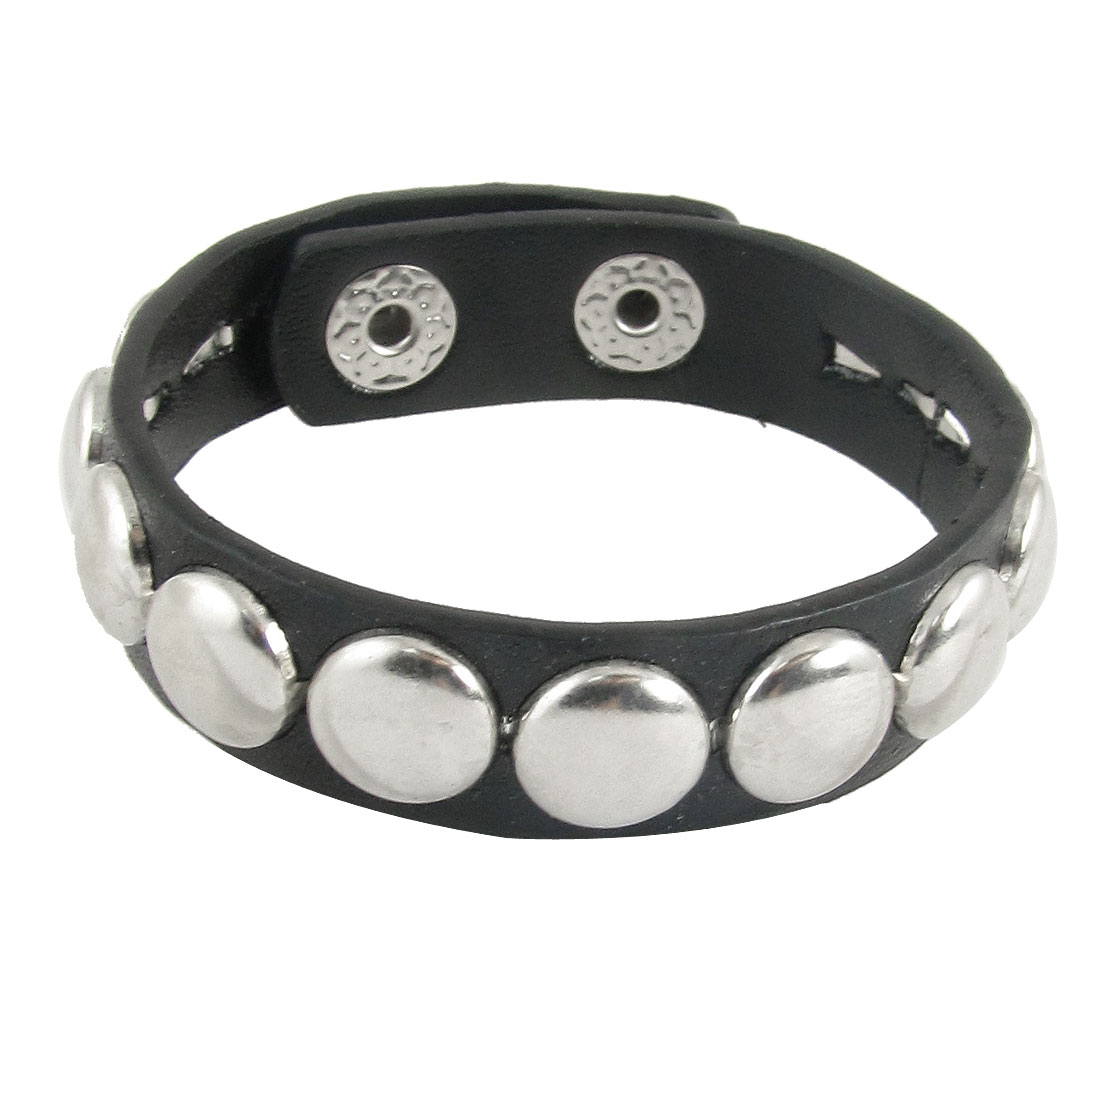 Woman Round Metal Studs Detailing Adjustable Faux Leather Bracelet Wristband